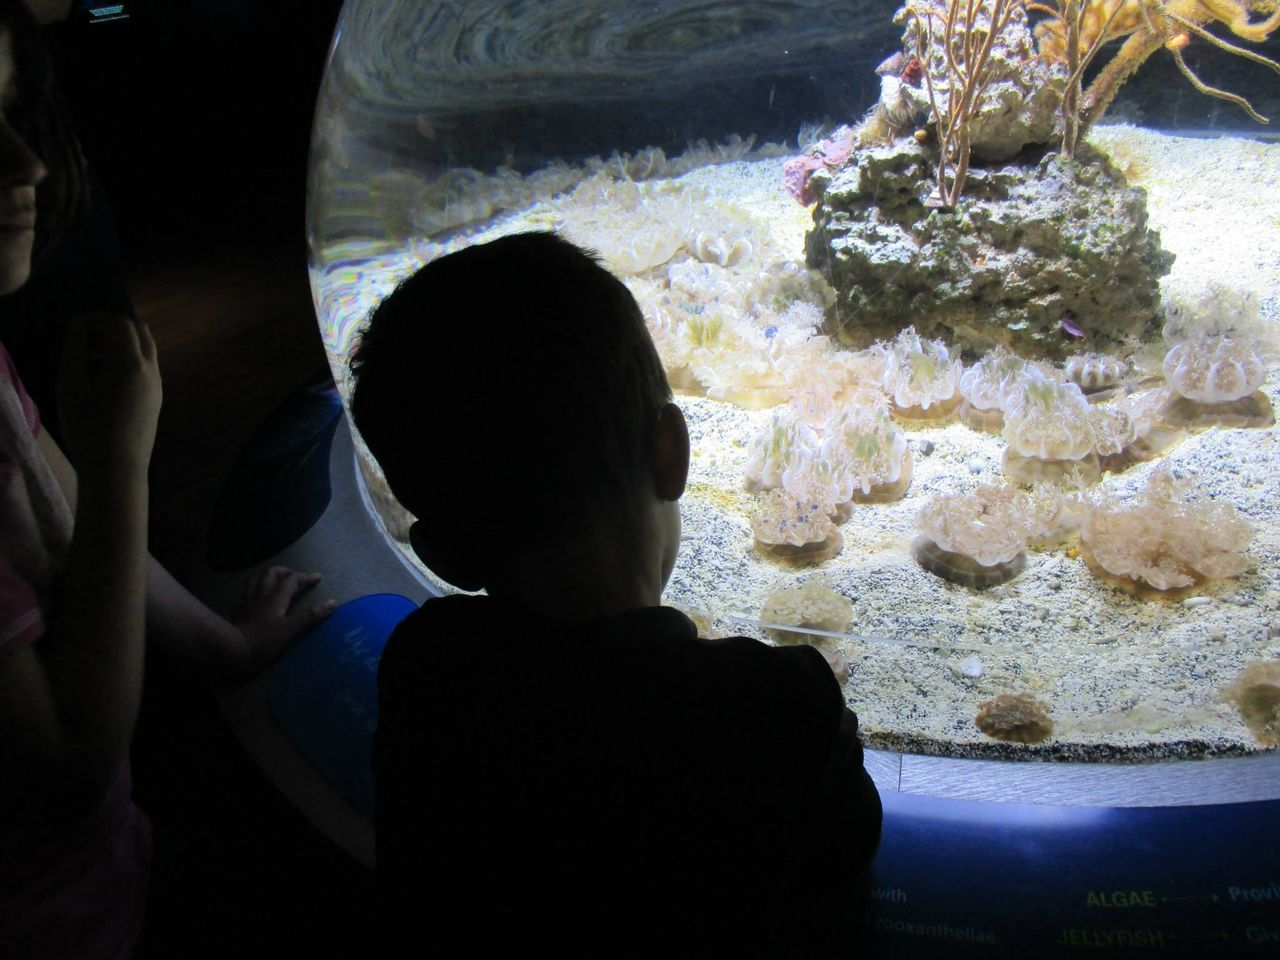 Boys Childhood Discover Your City Discovering New Things Learning Mesmerized The Innocence Of A Child Togetherness Zoo